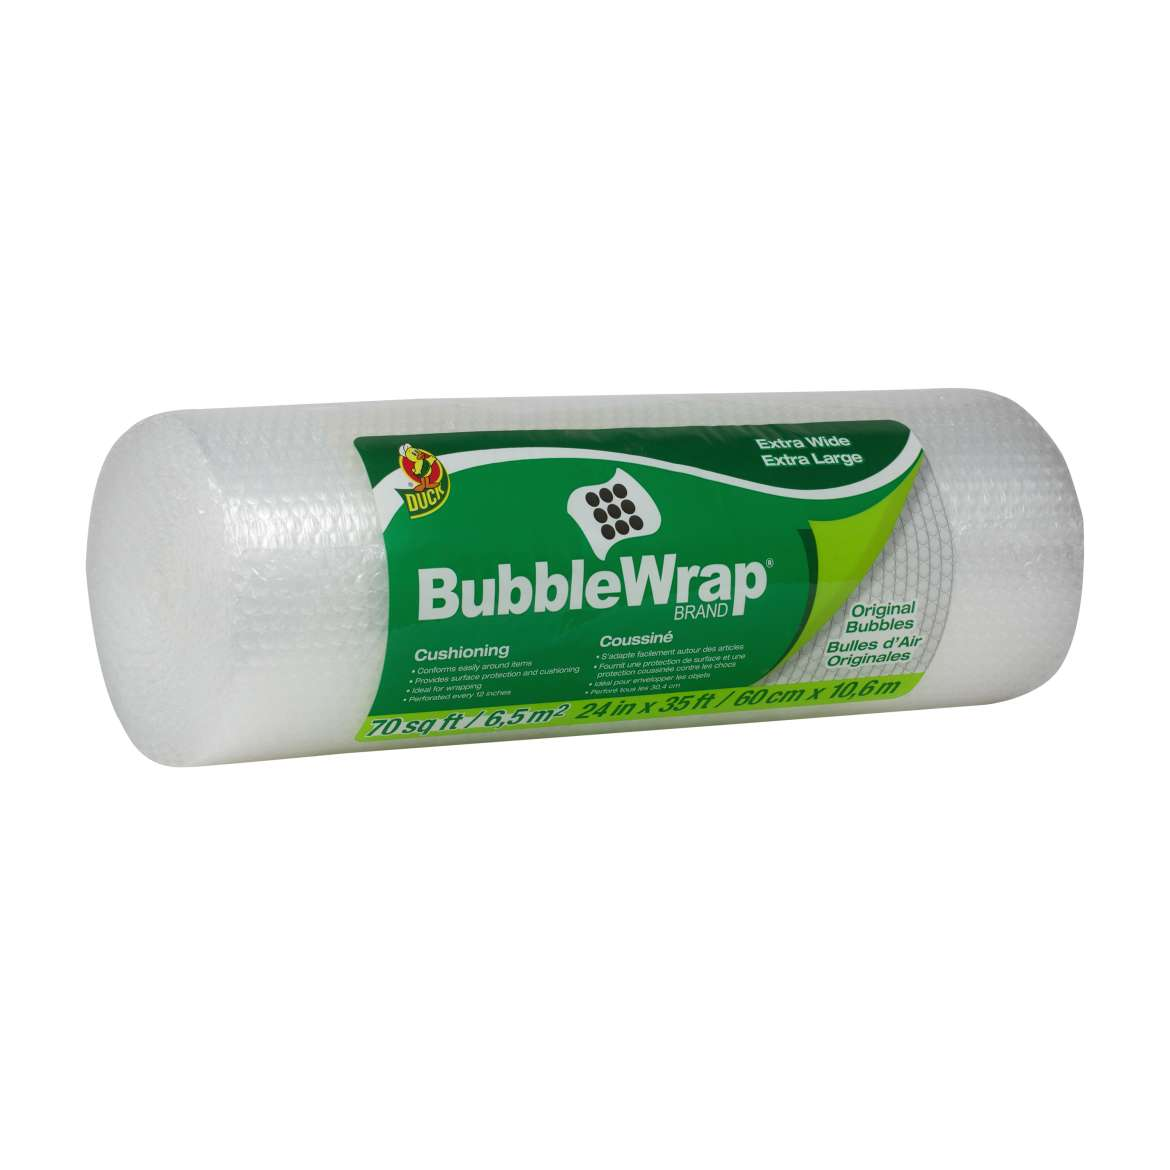 Duck® Brand Original Bubble Wrap® Cushioning - Clear, 24 in. x 35 ft. Image